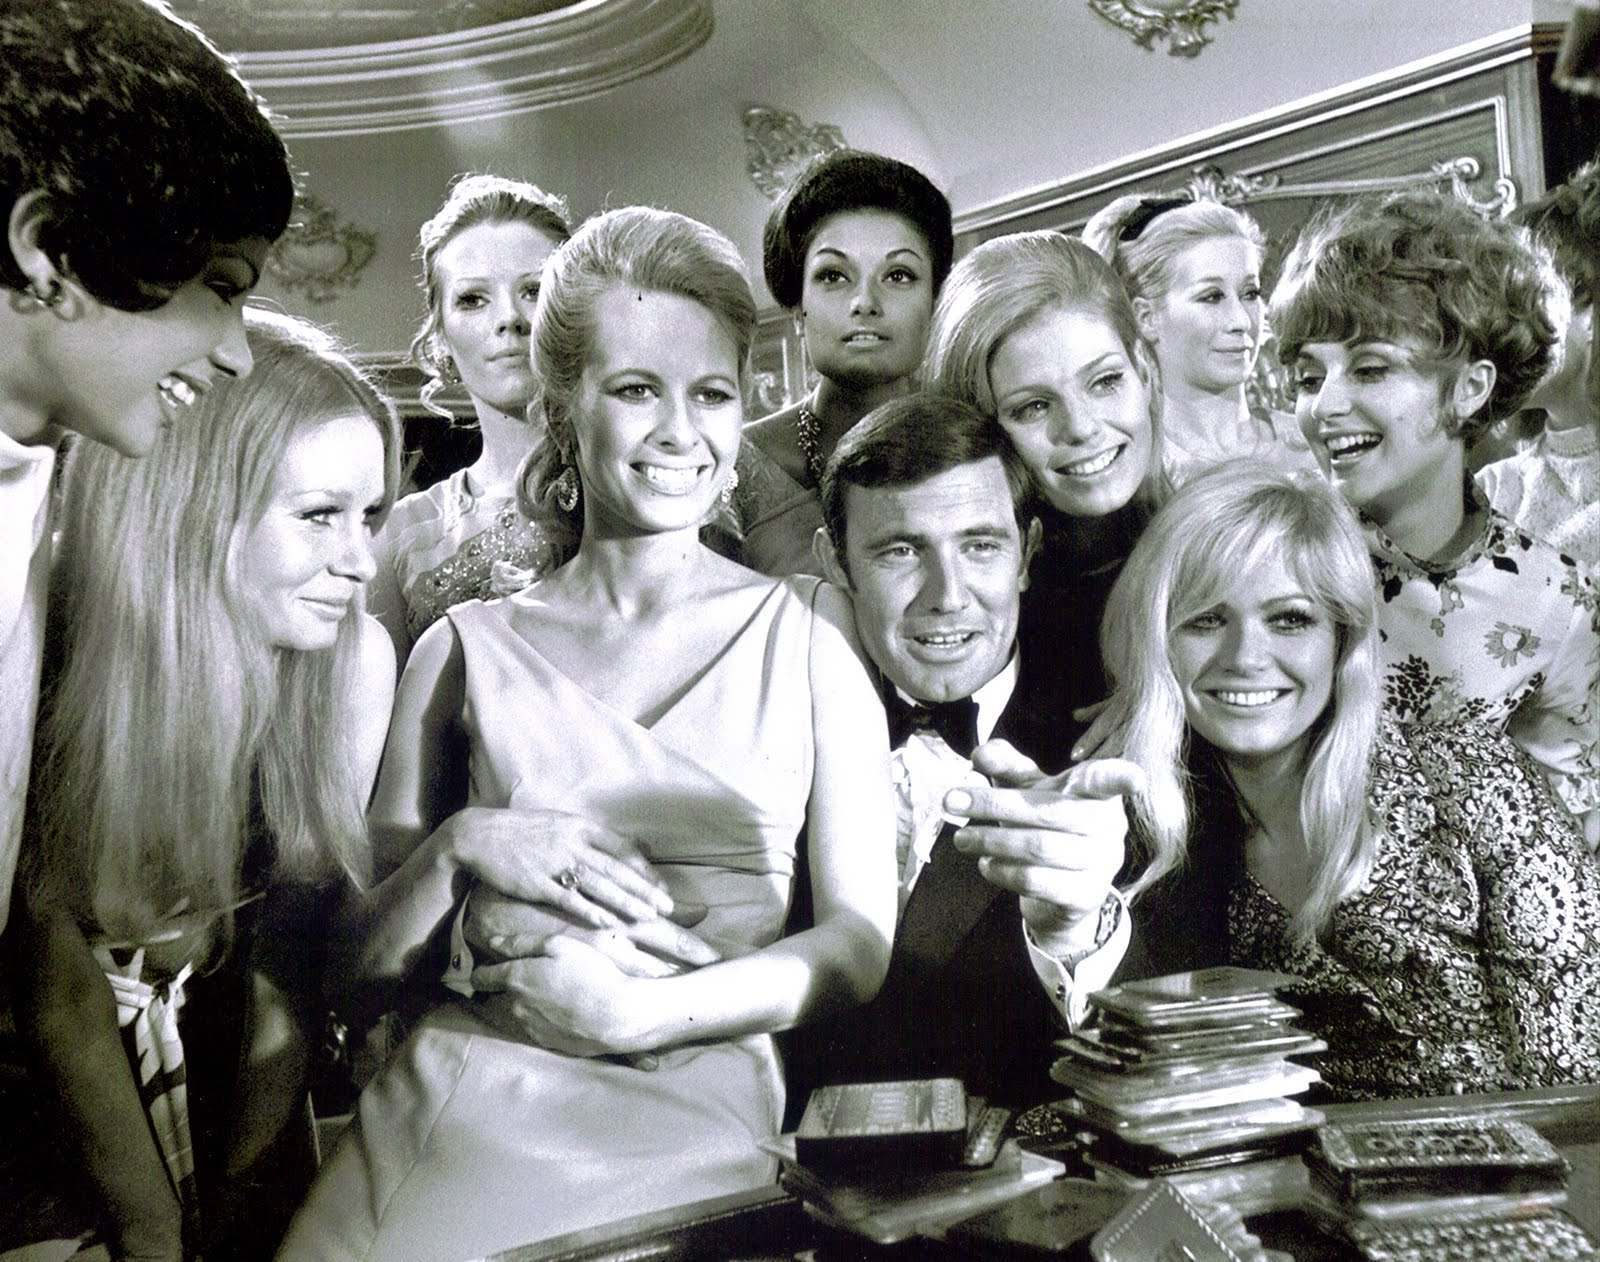 George Lazenby and the 'Bond girls'.